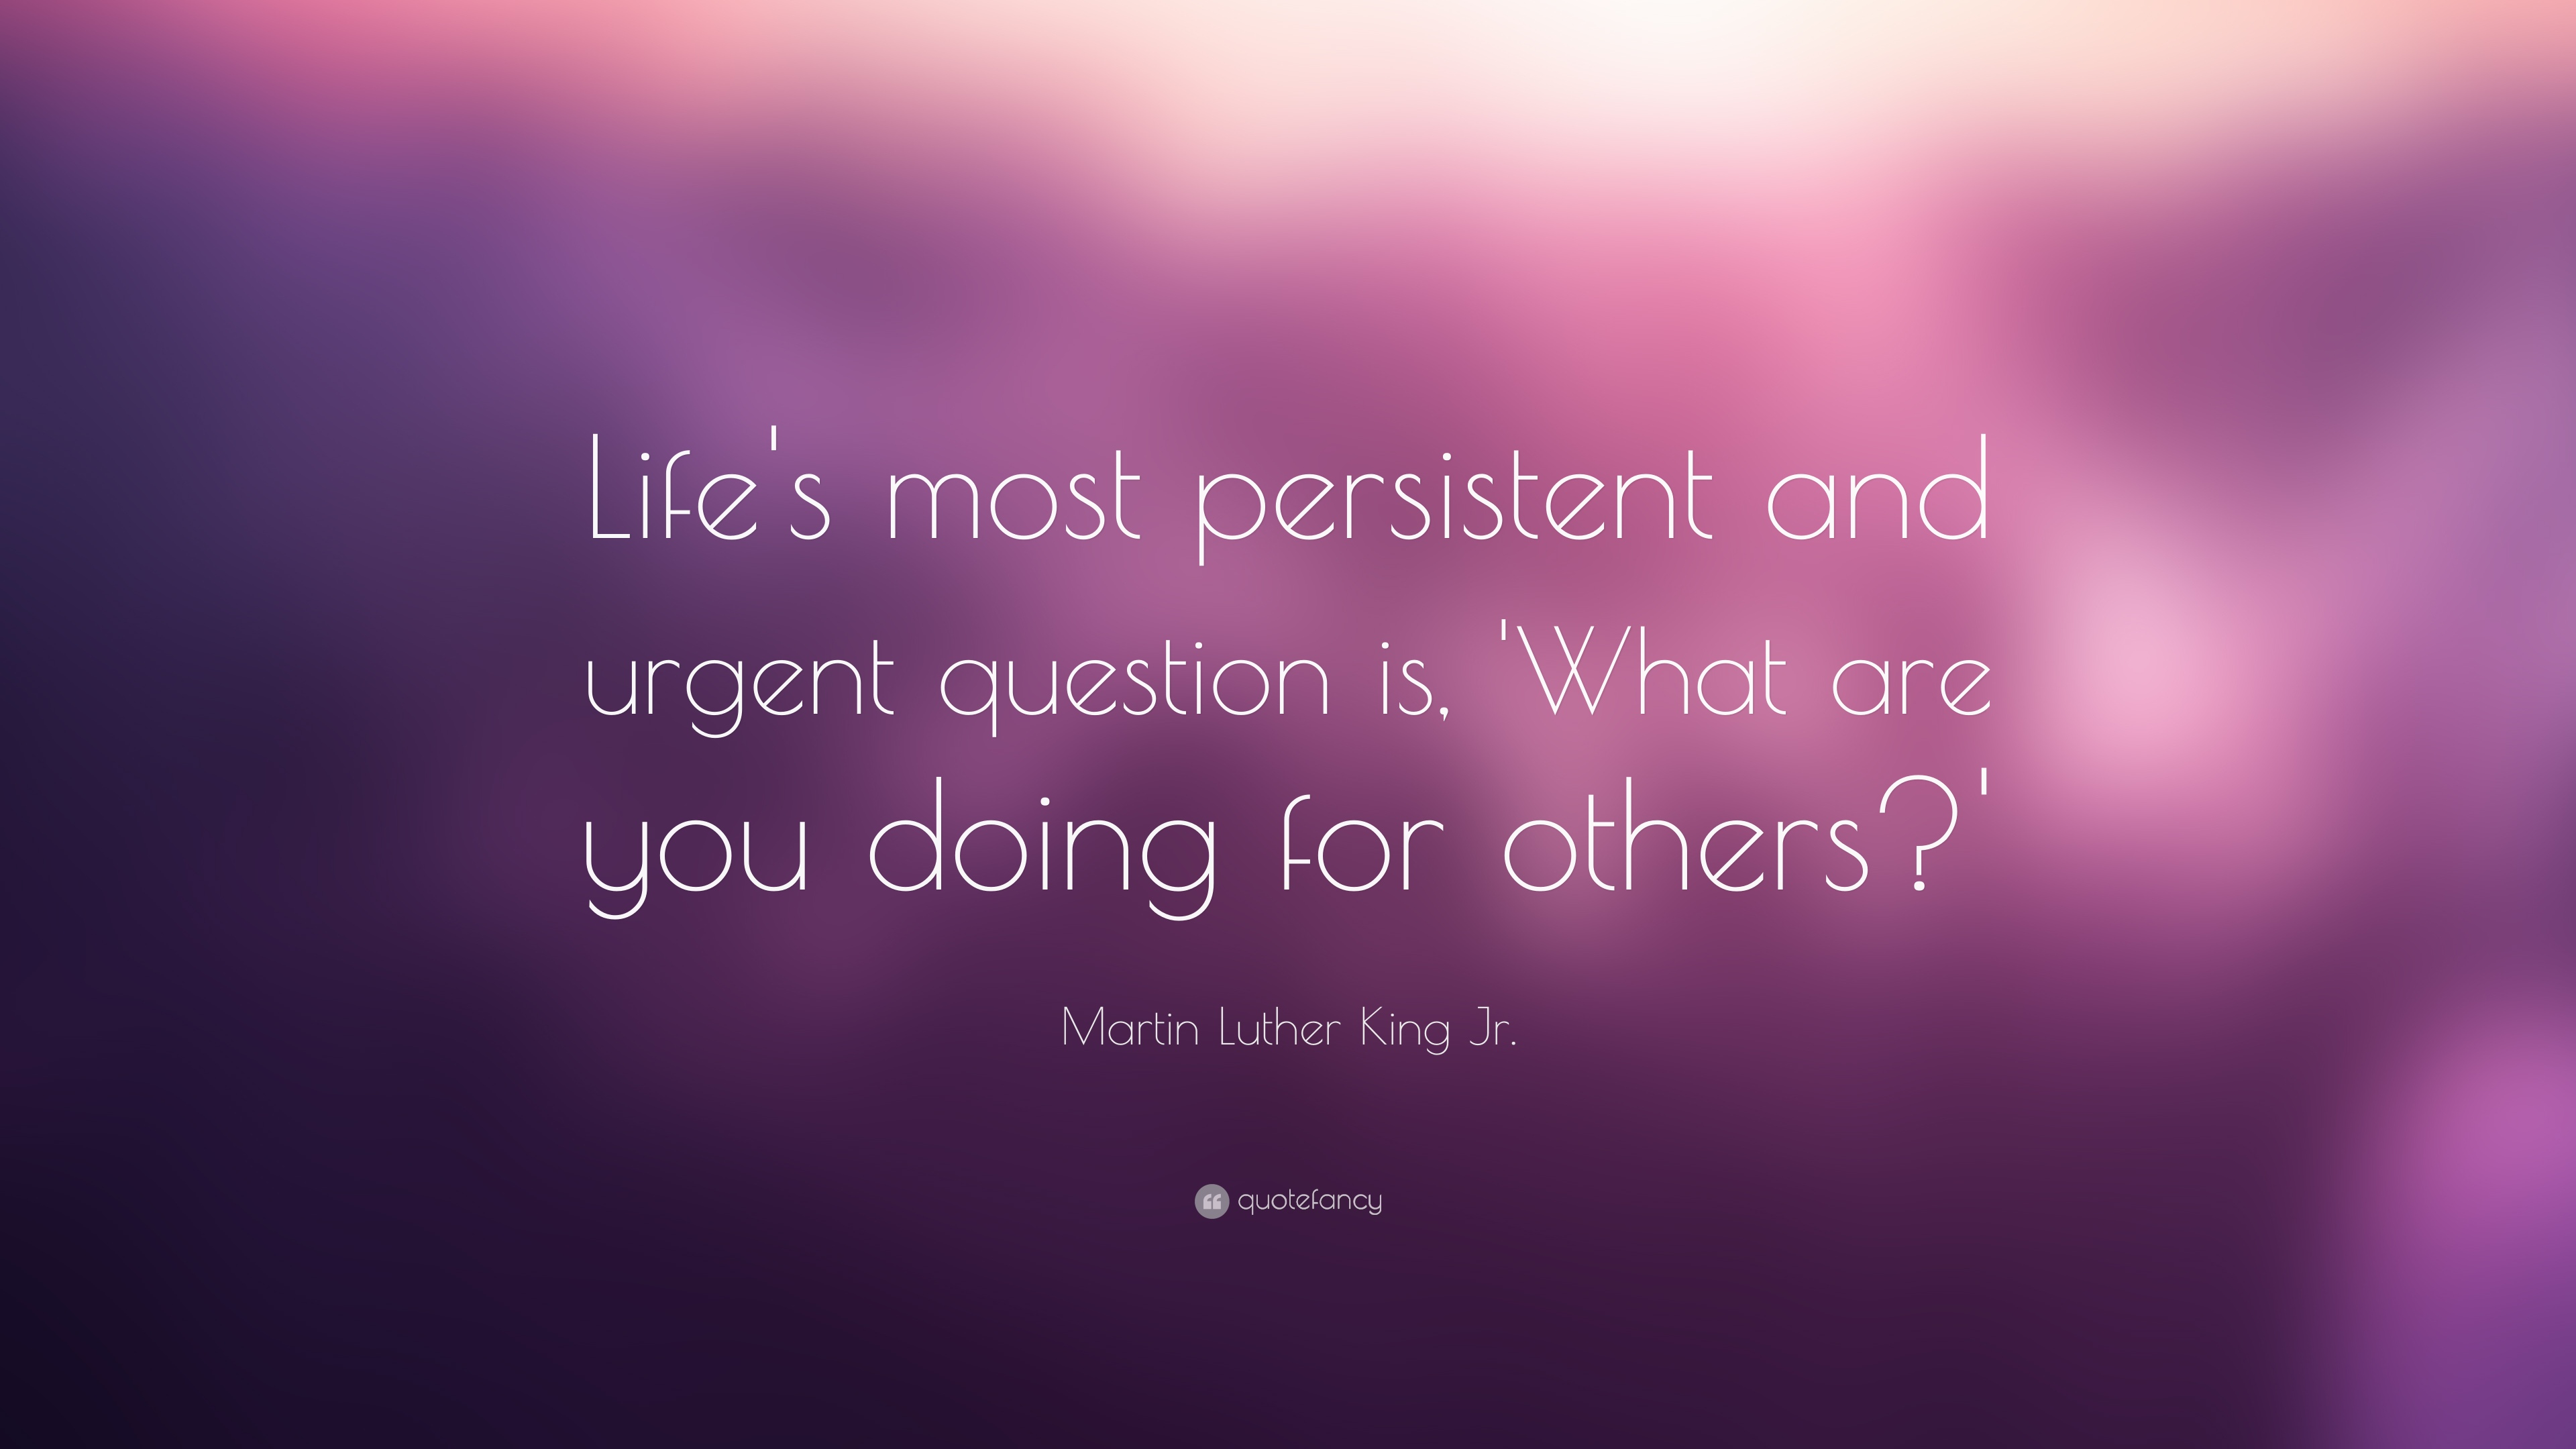 Martin Luther King Jr Quote Lifes Most Persistent And Urgent